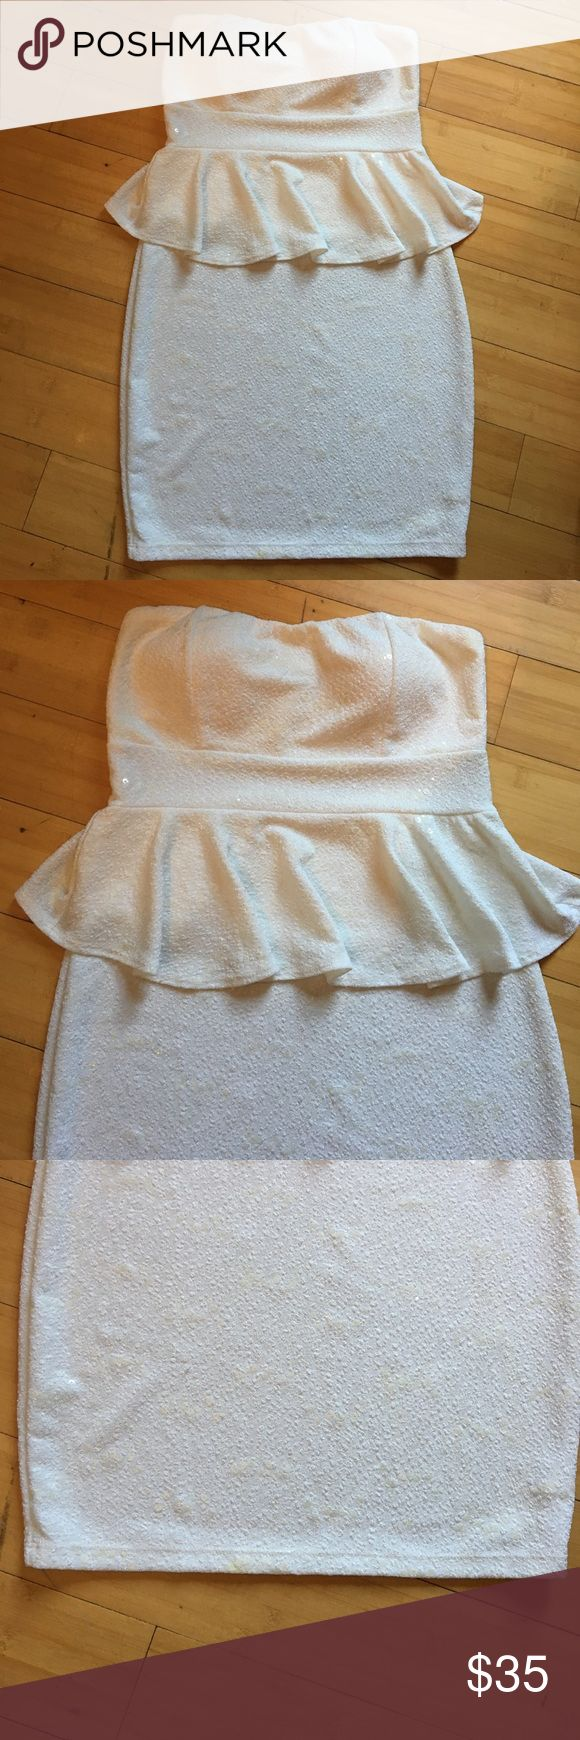 White strapless dress by Body Central Summer Dress White strapless Summer dress Size Large Great Condition Very nicely kept worn only once Great for the summer nights out Body Central Dresses Strapless